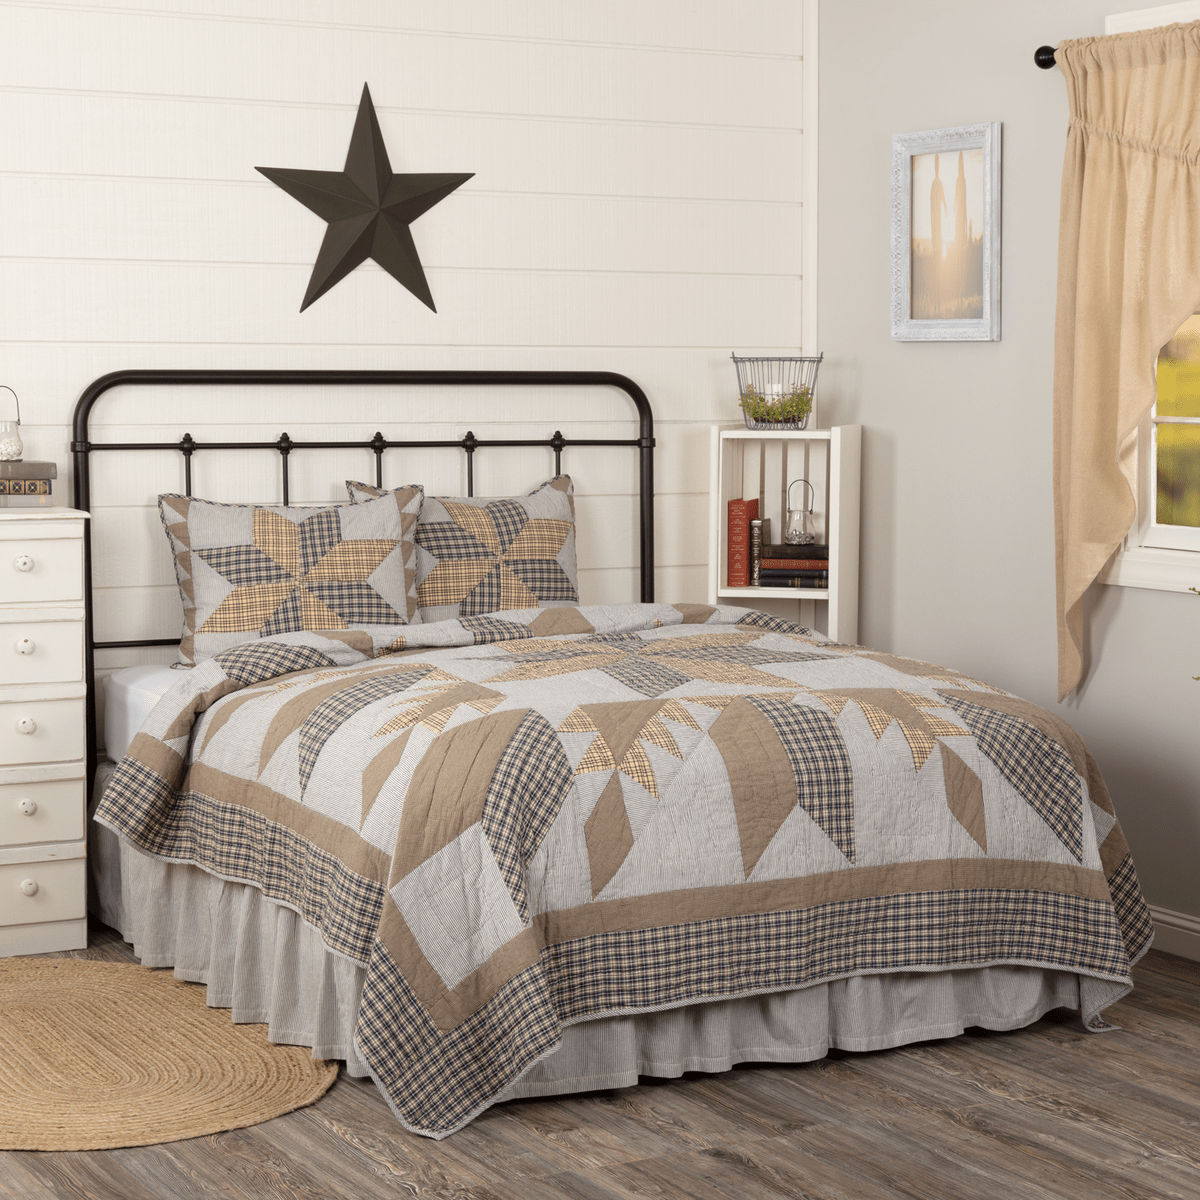 Colorful Farmhouse Bedding Ideas Retro Barn Country Linens